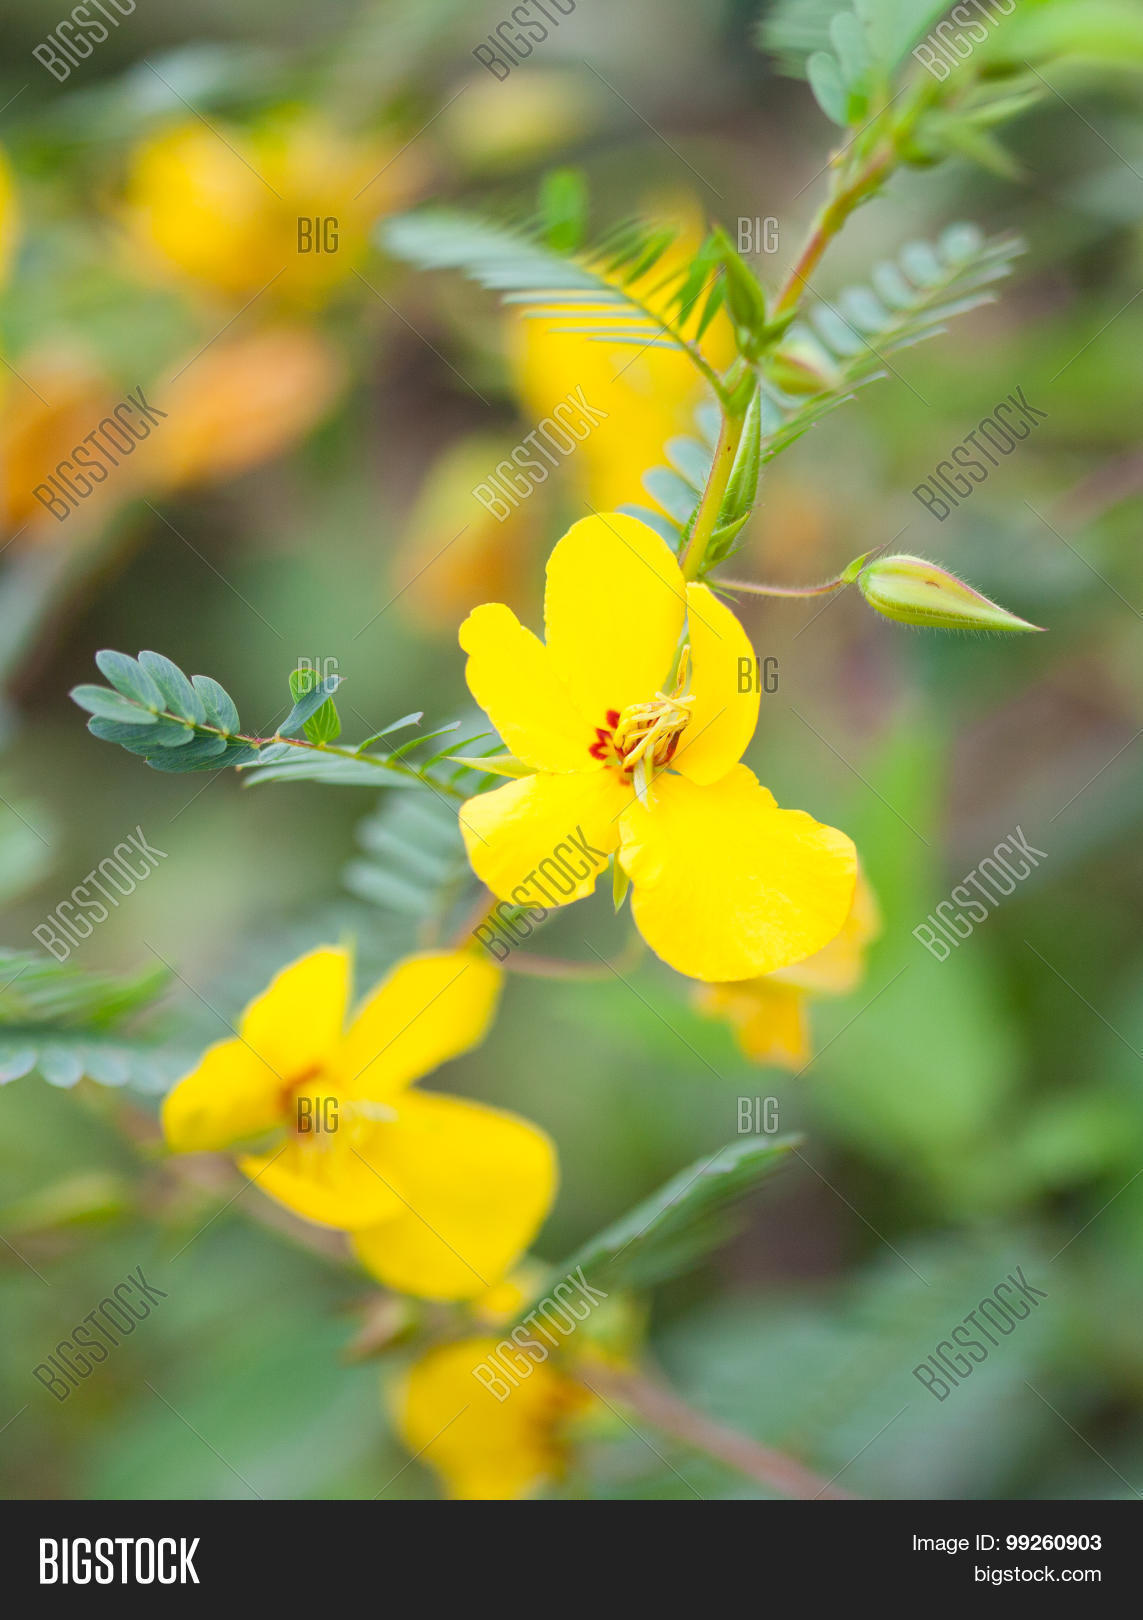 Partridge Pea Flower Image Photo Free Trial Bigstock